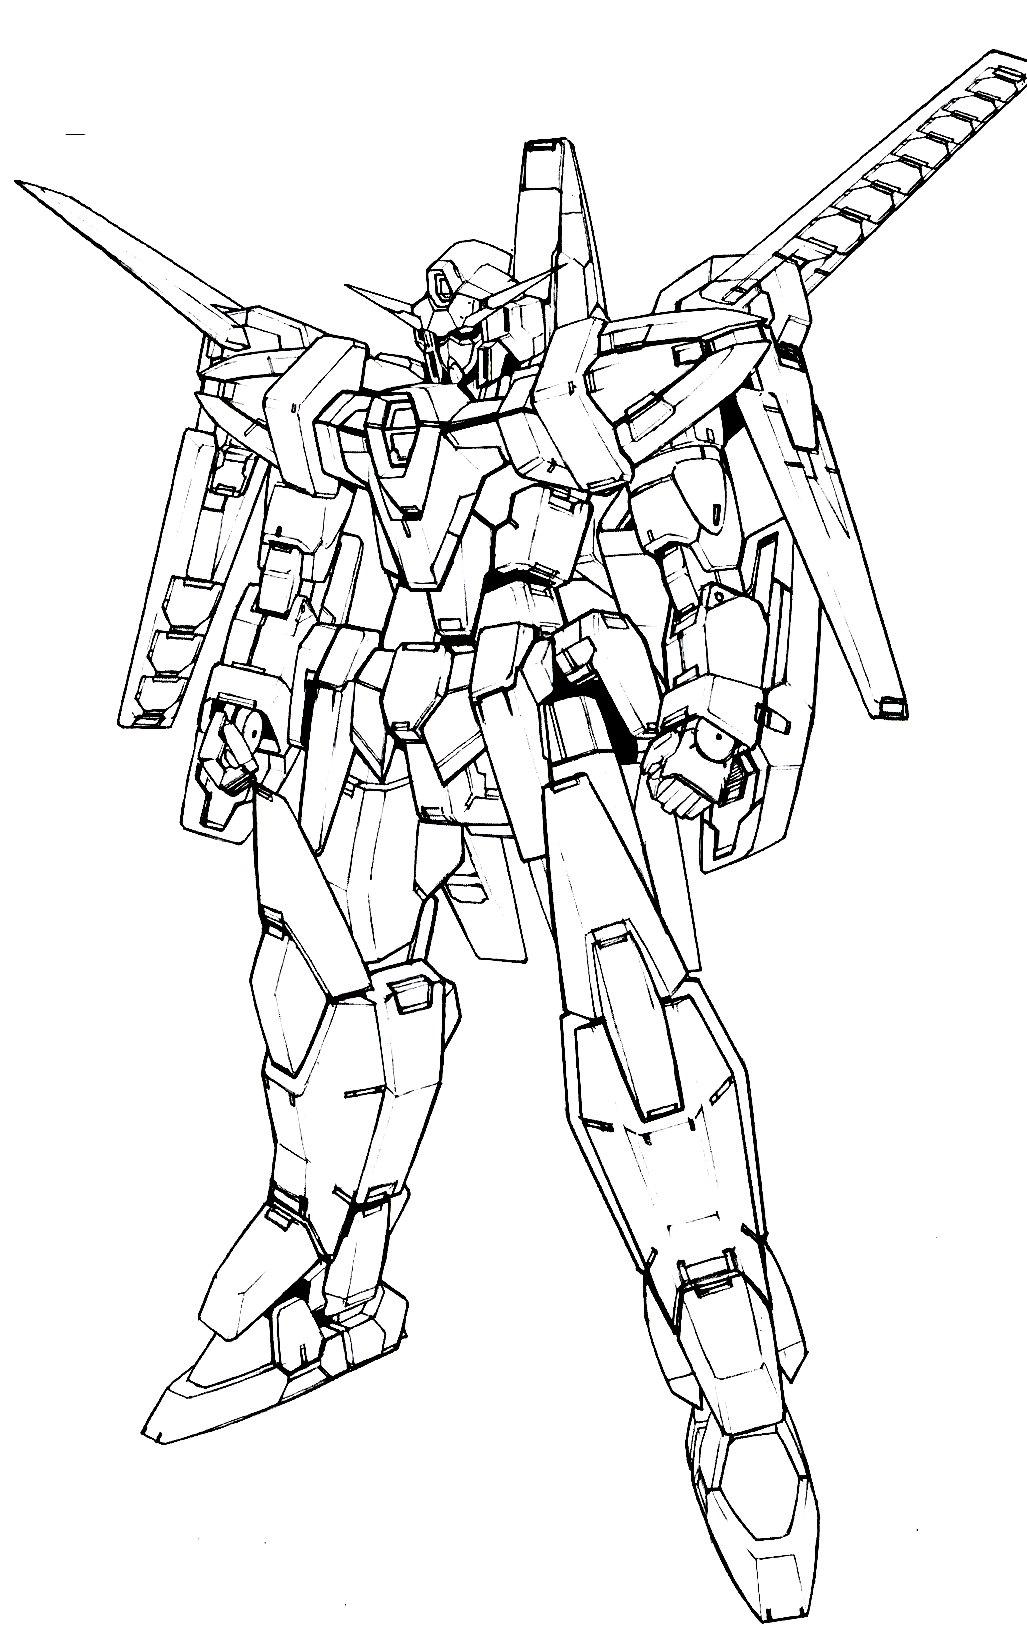 gundam coloring pages SD Gundam Coloring Pages | Gd | Gundam, Coloring pages, Chibi gundam coloring pages